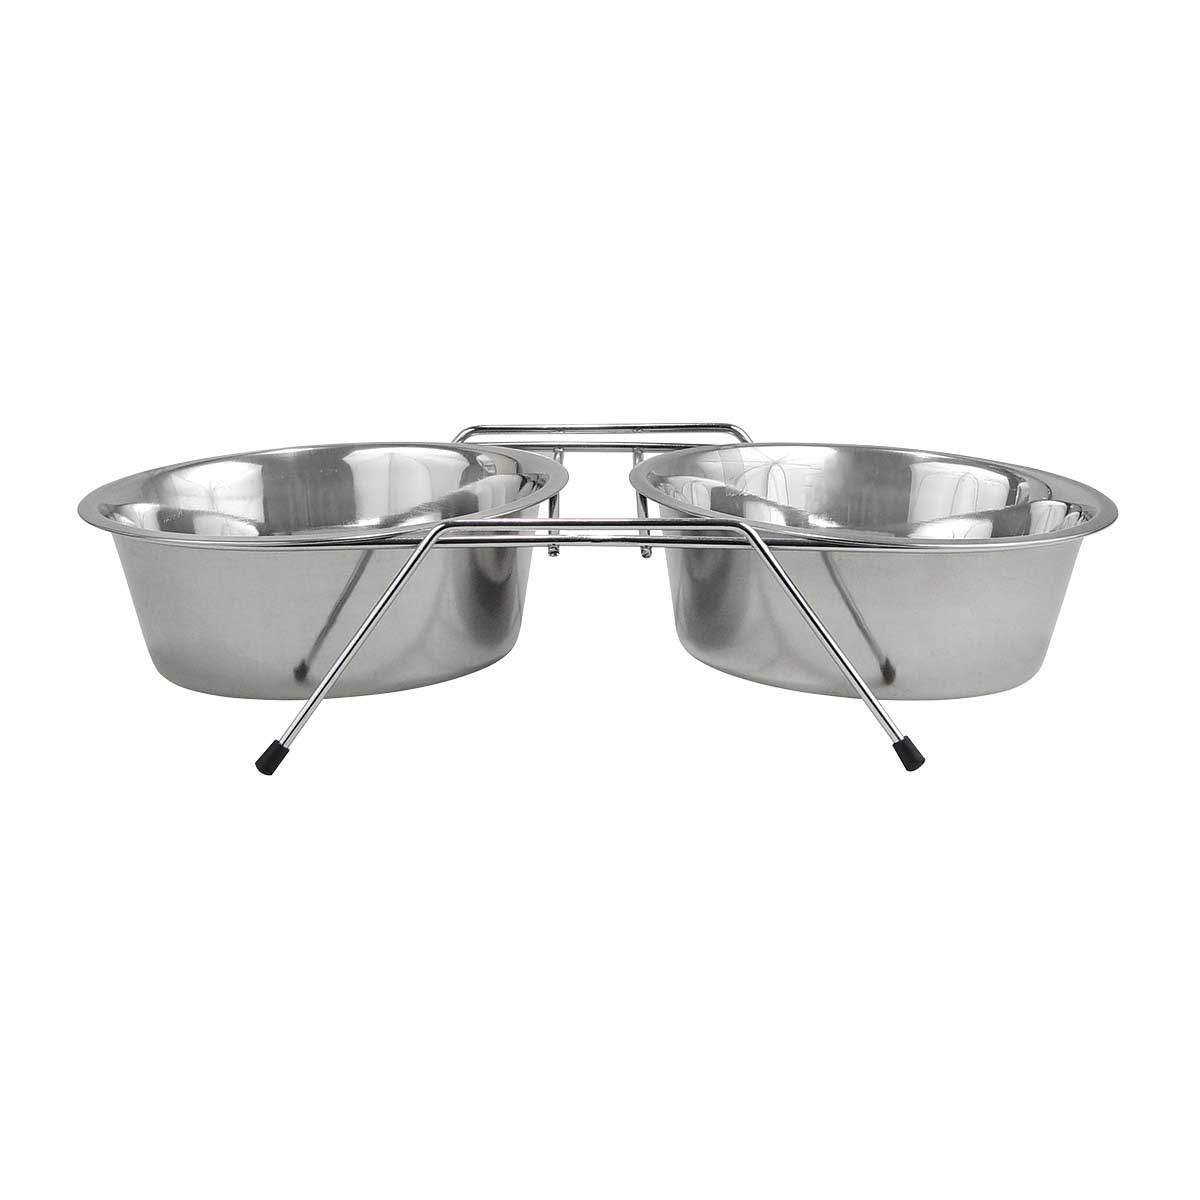 Indipets Stainless Steel Double Diner for Dogs With 2 Quart Bowls